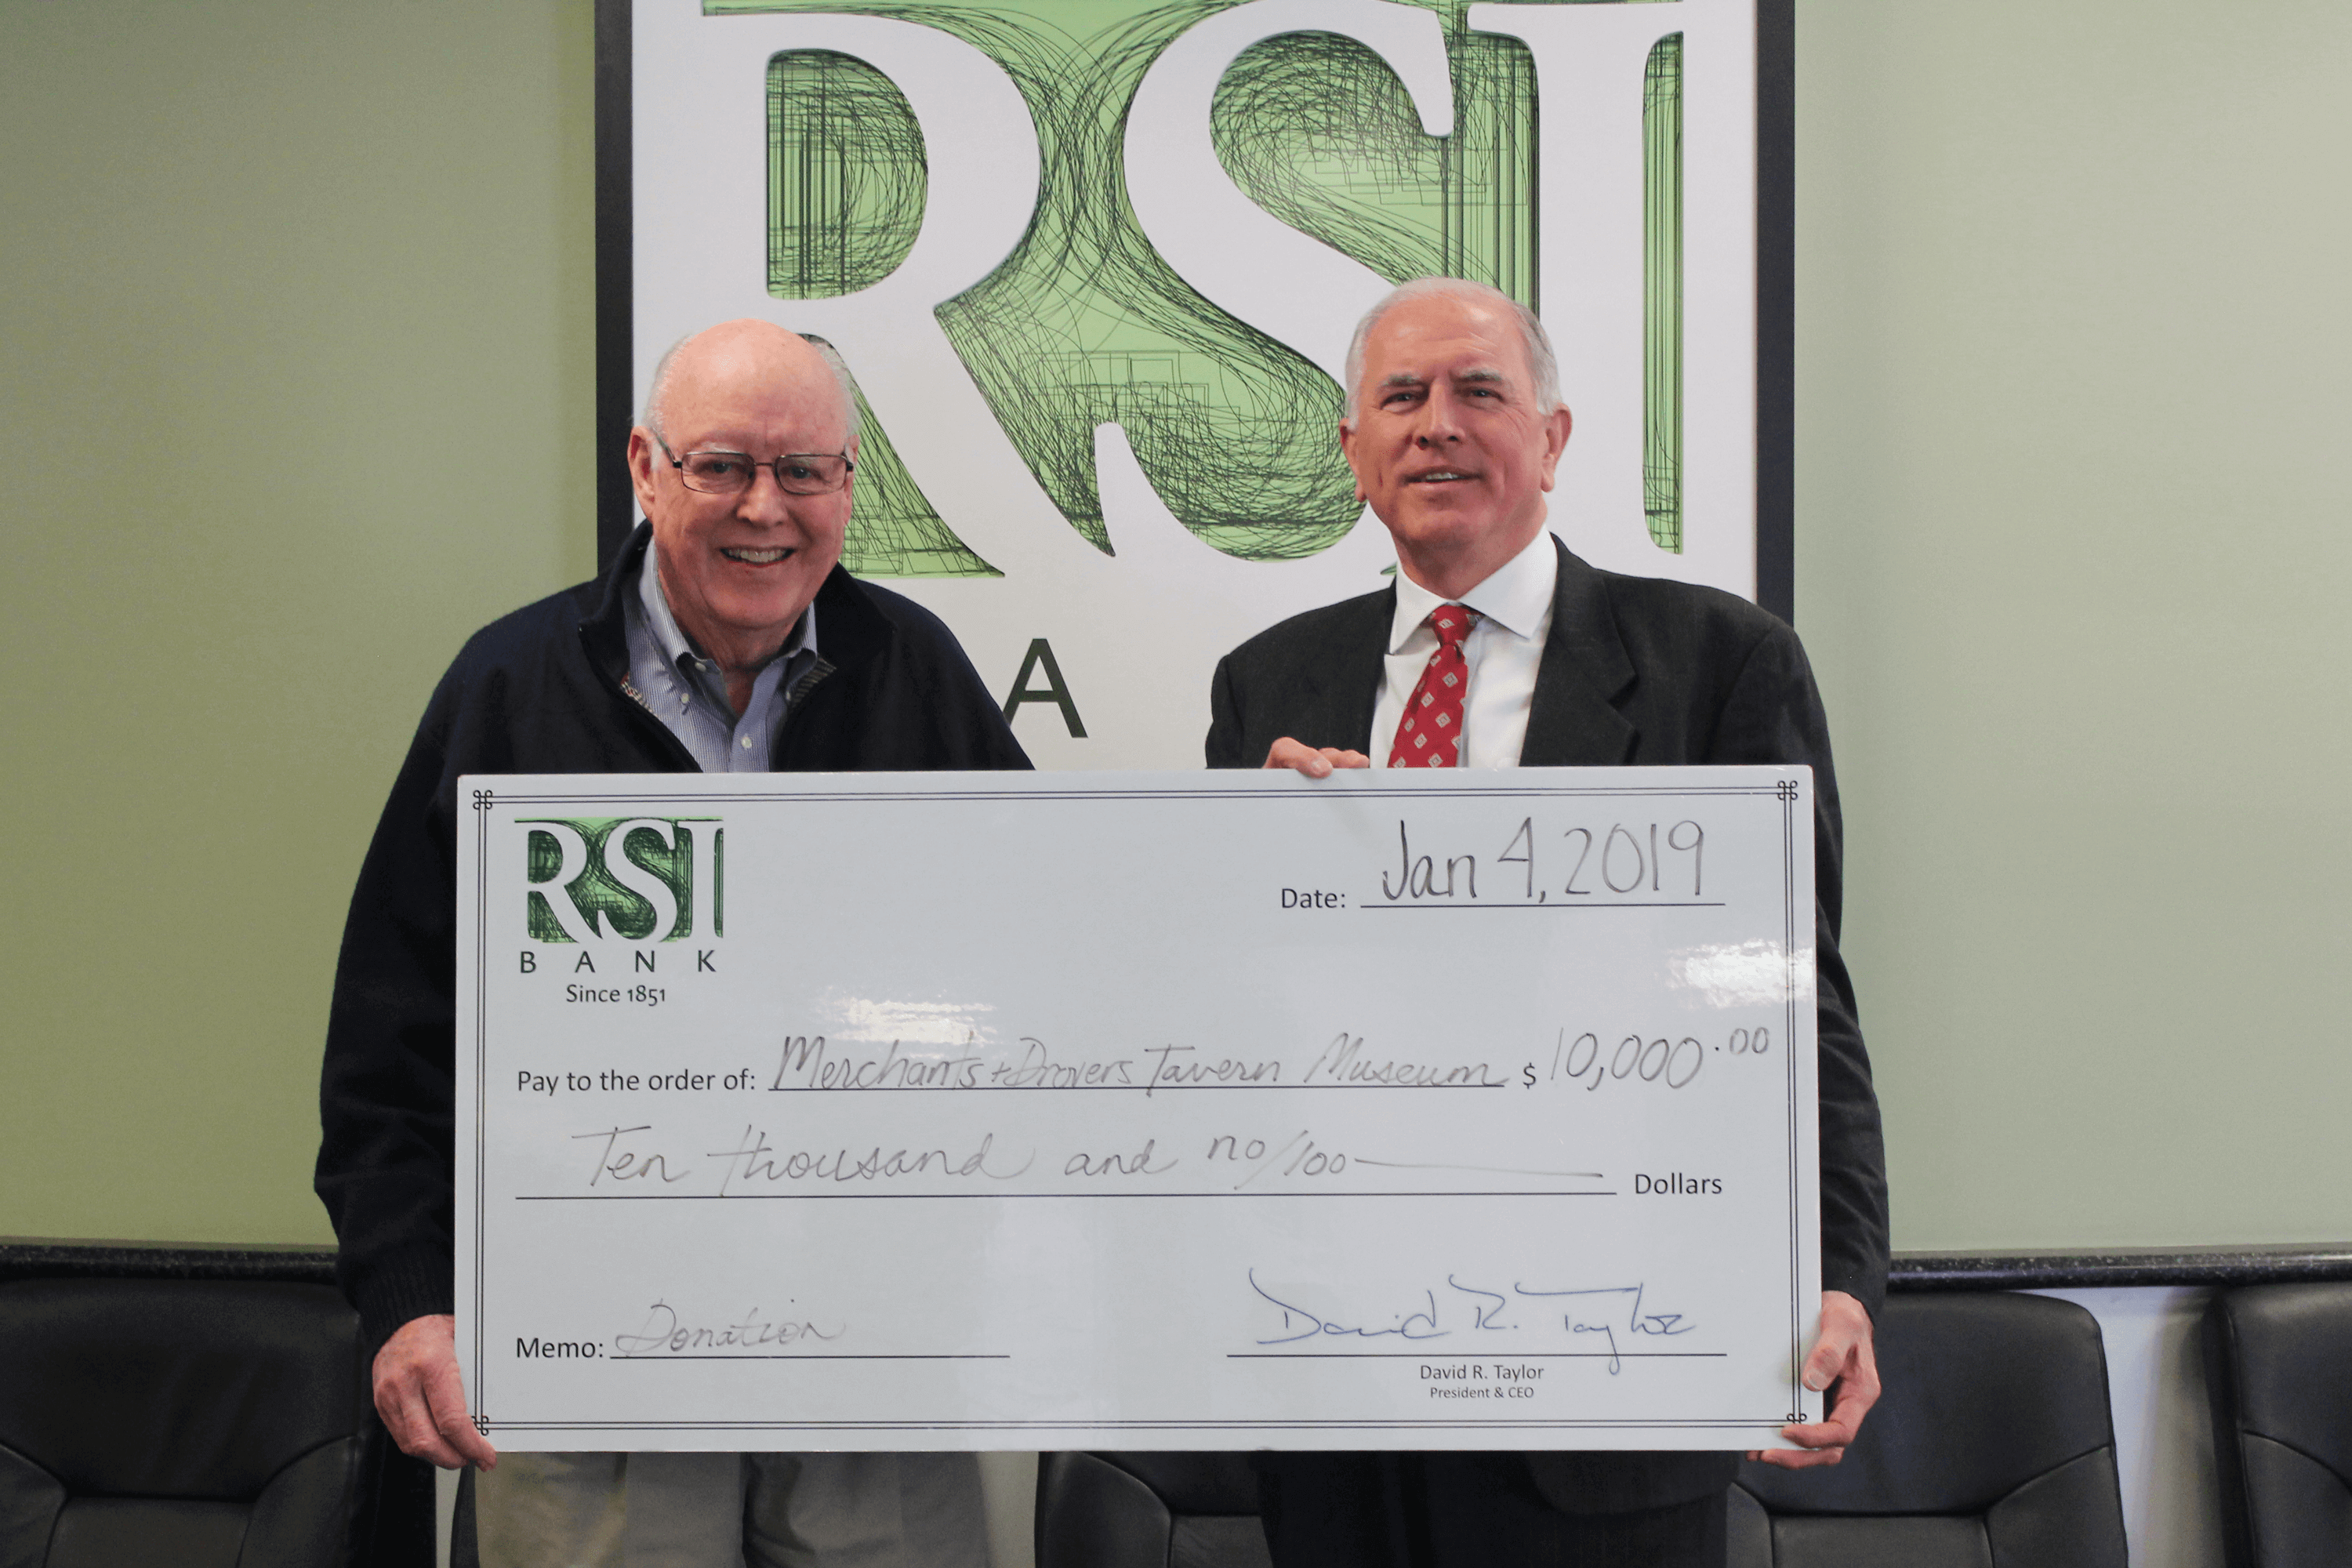 David R. Taylor, Chairman, CEO and President of RSI Bank, presents a donation check to Alex Shipley, Director of Museum Operations. The men are standing in front of the RSI Bank logo sign in the bank lobby.